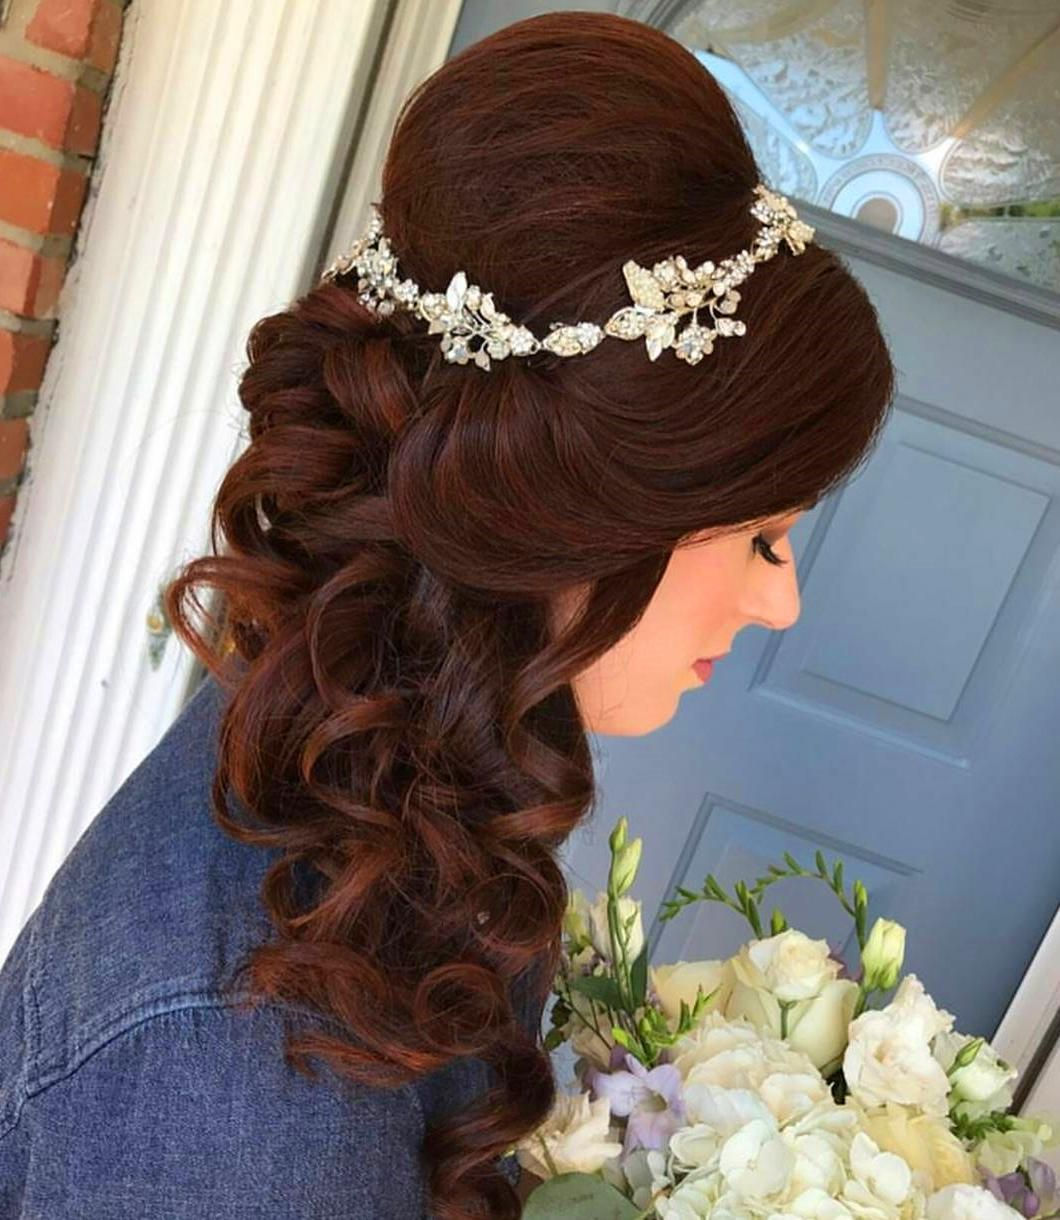 38 Simple Wedding Hairstyles That Are Easy To Master